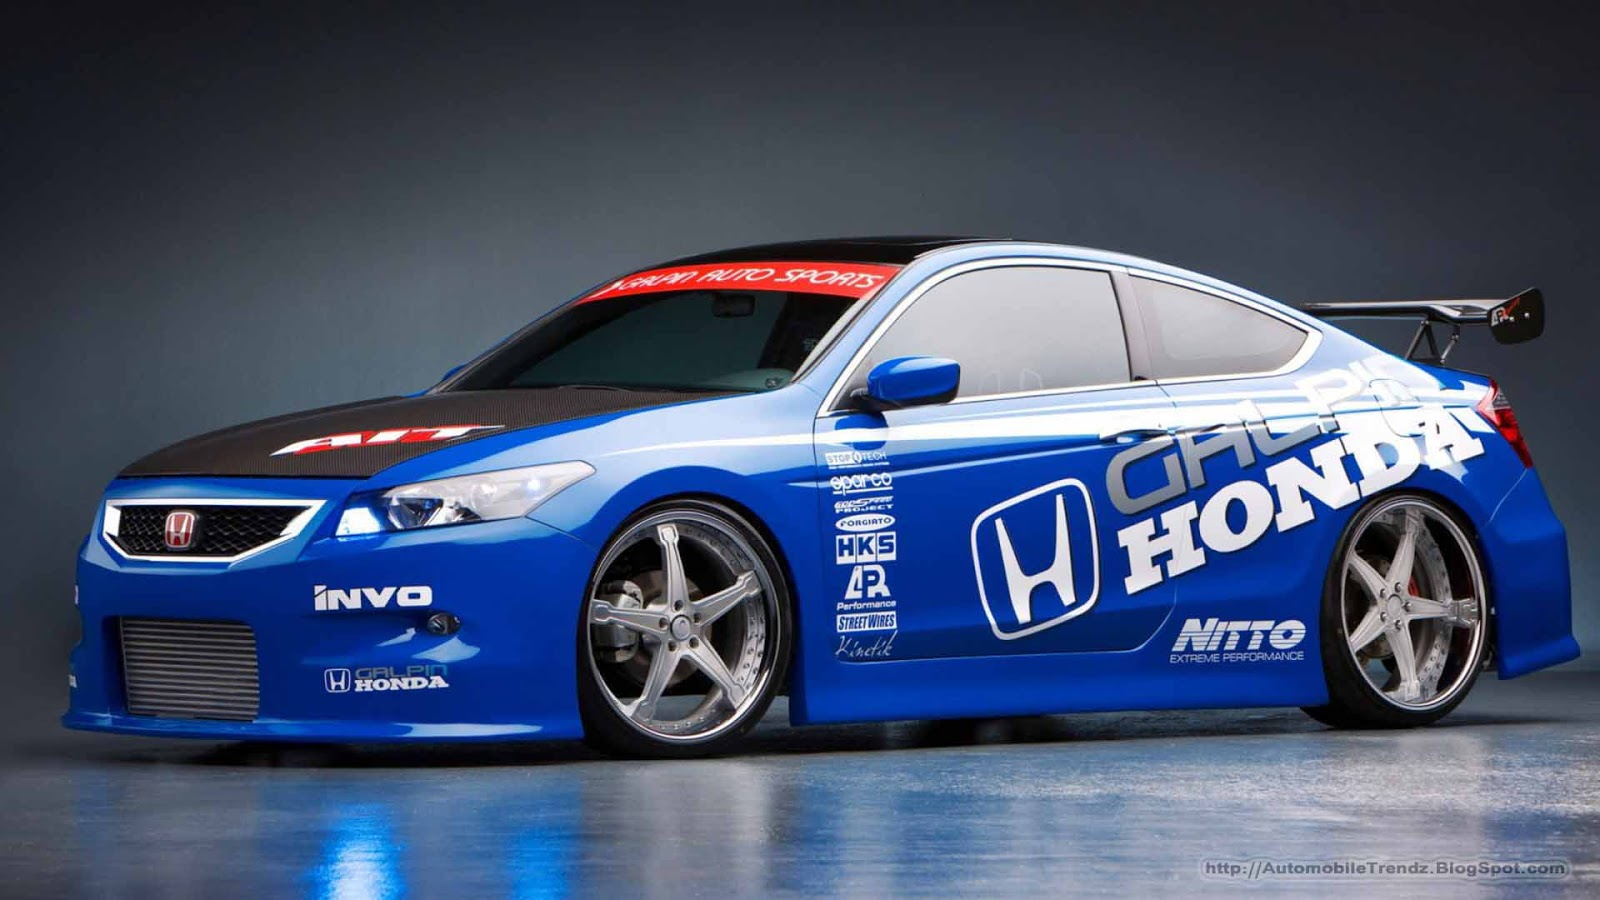 Automobile Trendz: Modified Honda Car Wallpapers